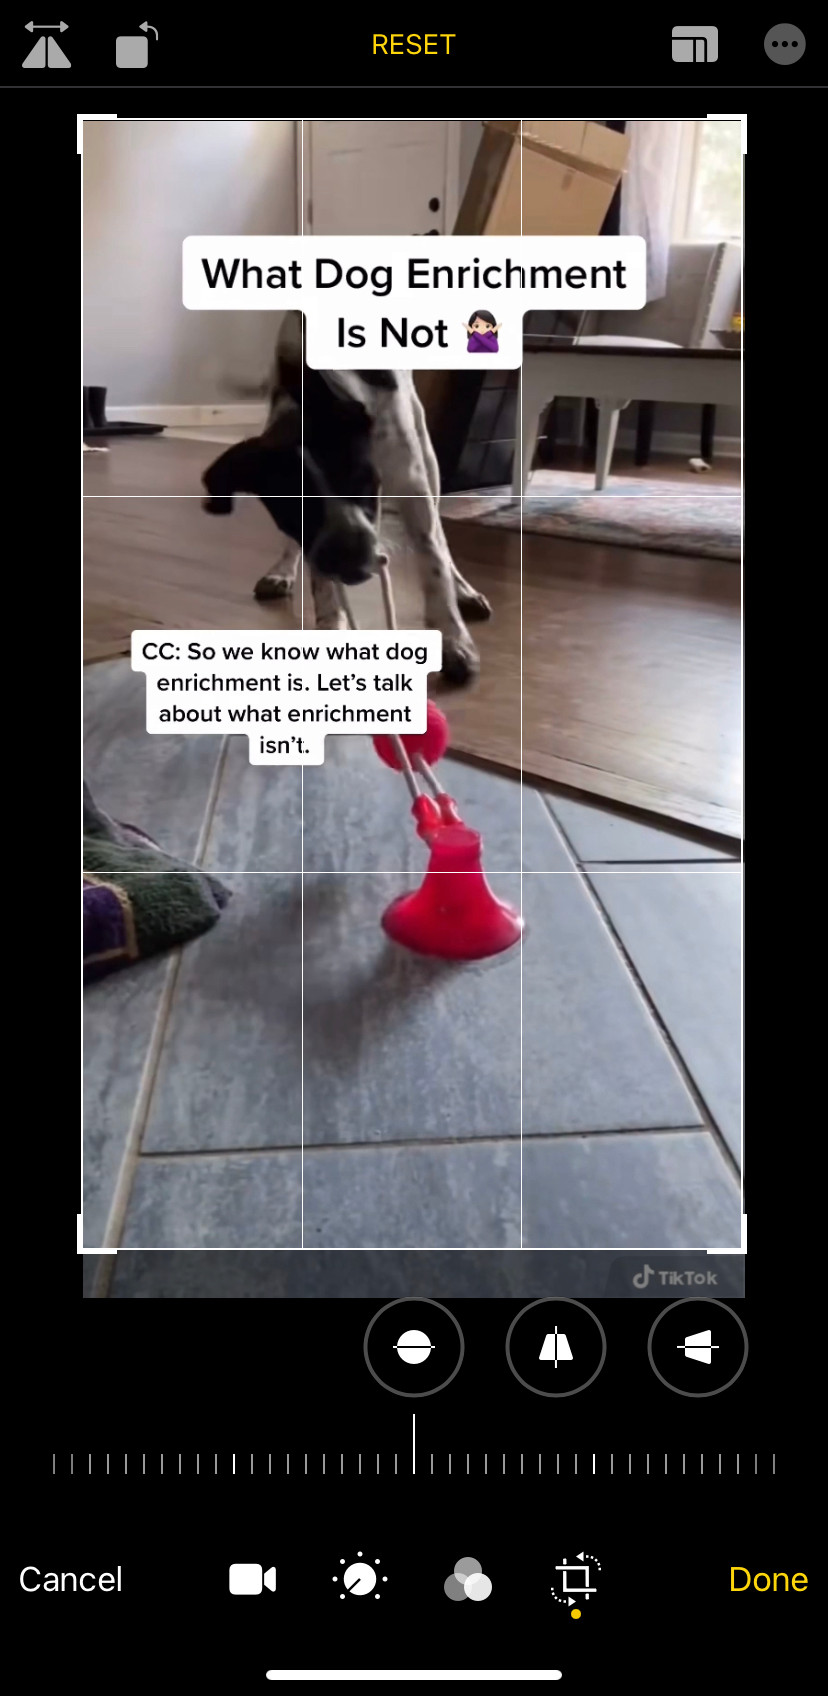 Edit your photo to crop out the bottom part of the video, which will take out the small watermark